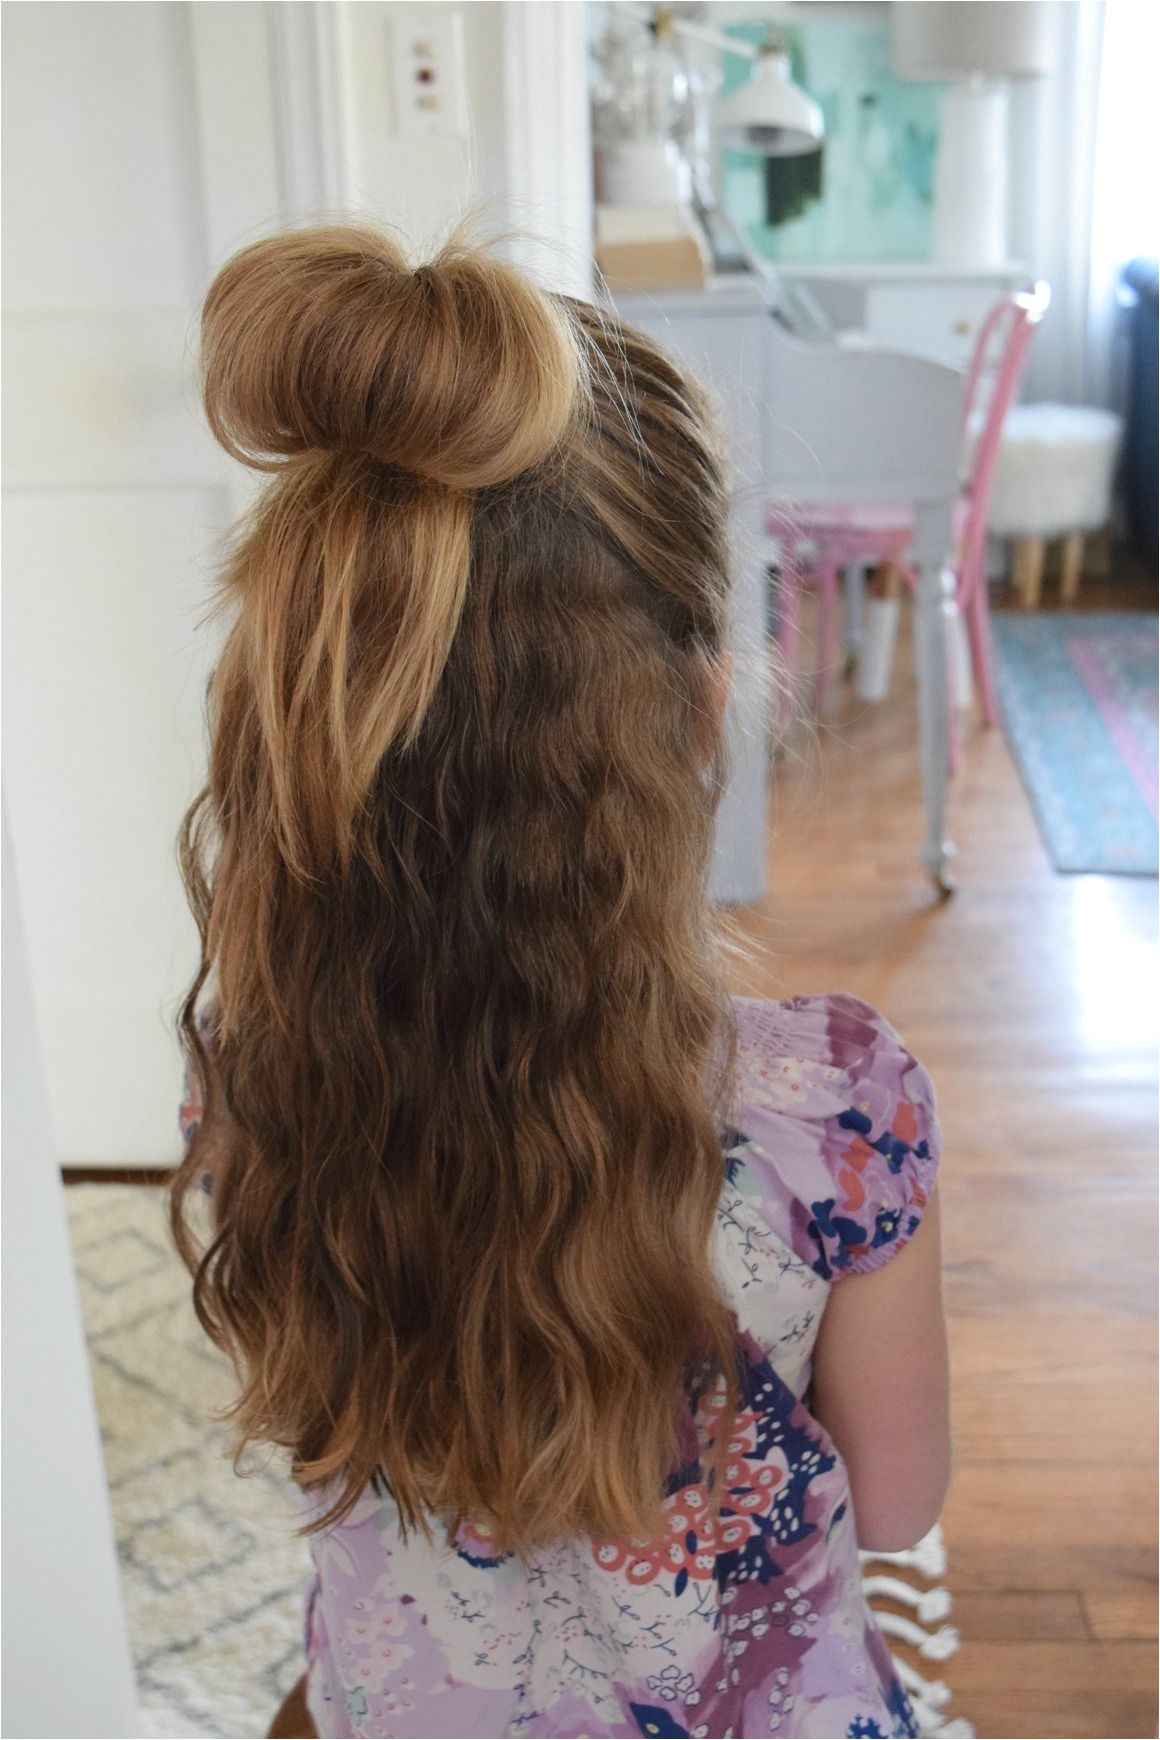 Hairstyle Ideas for School Girl Love Your Hair Easy Hairstyles with Dove